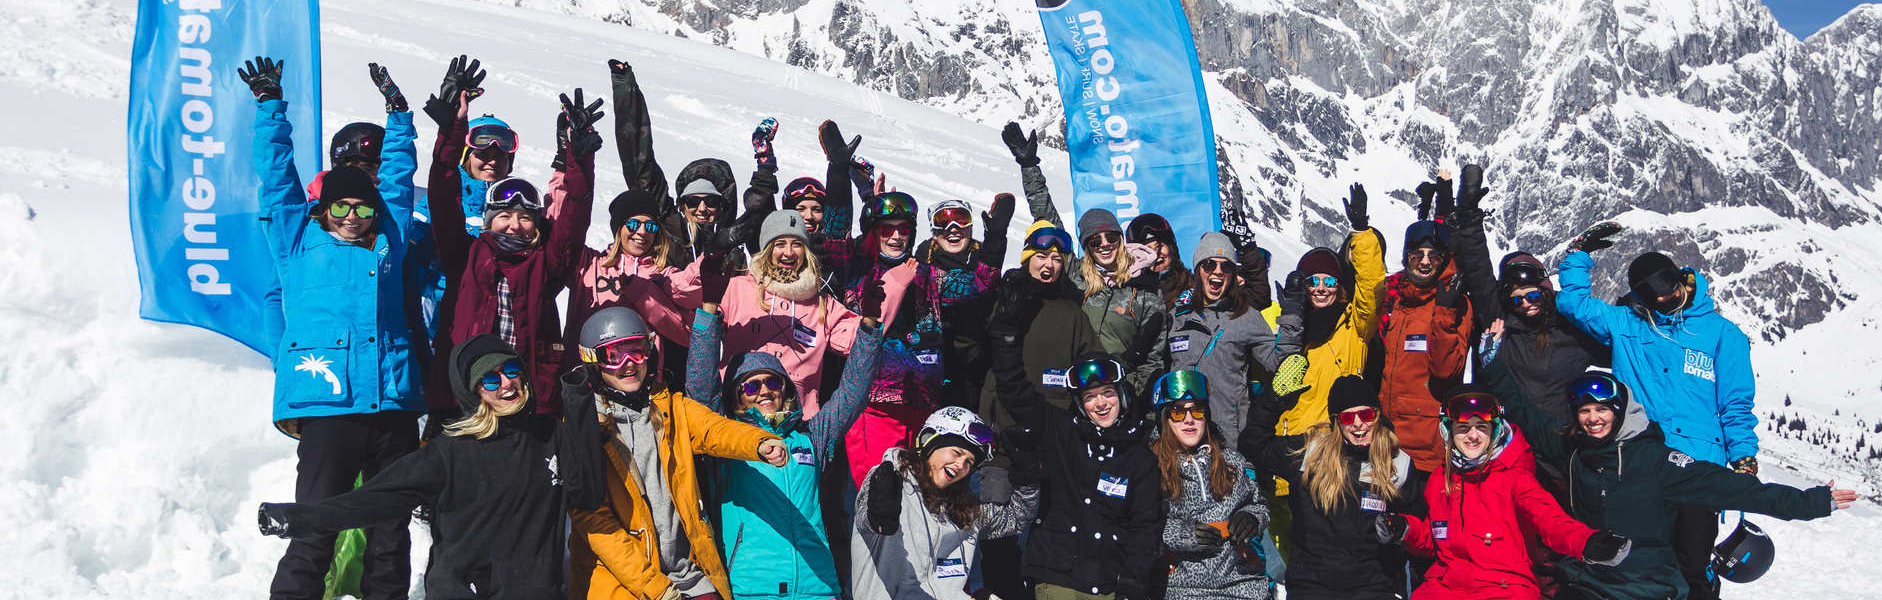 Blue Tomato Girls Day Hochkönig – Shredqueens own the park!